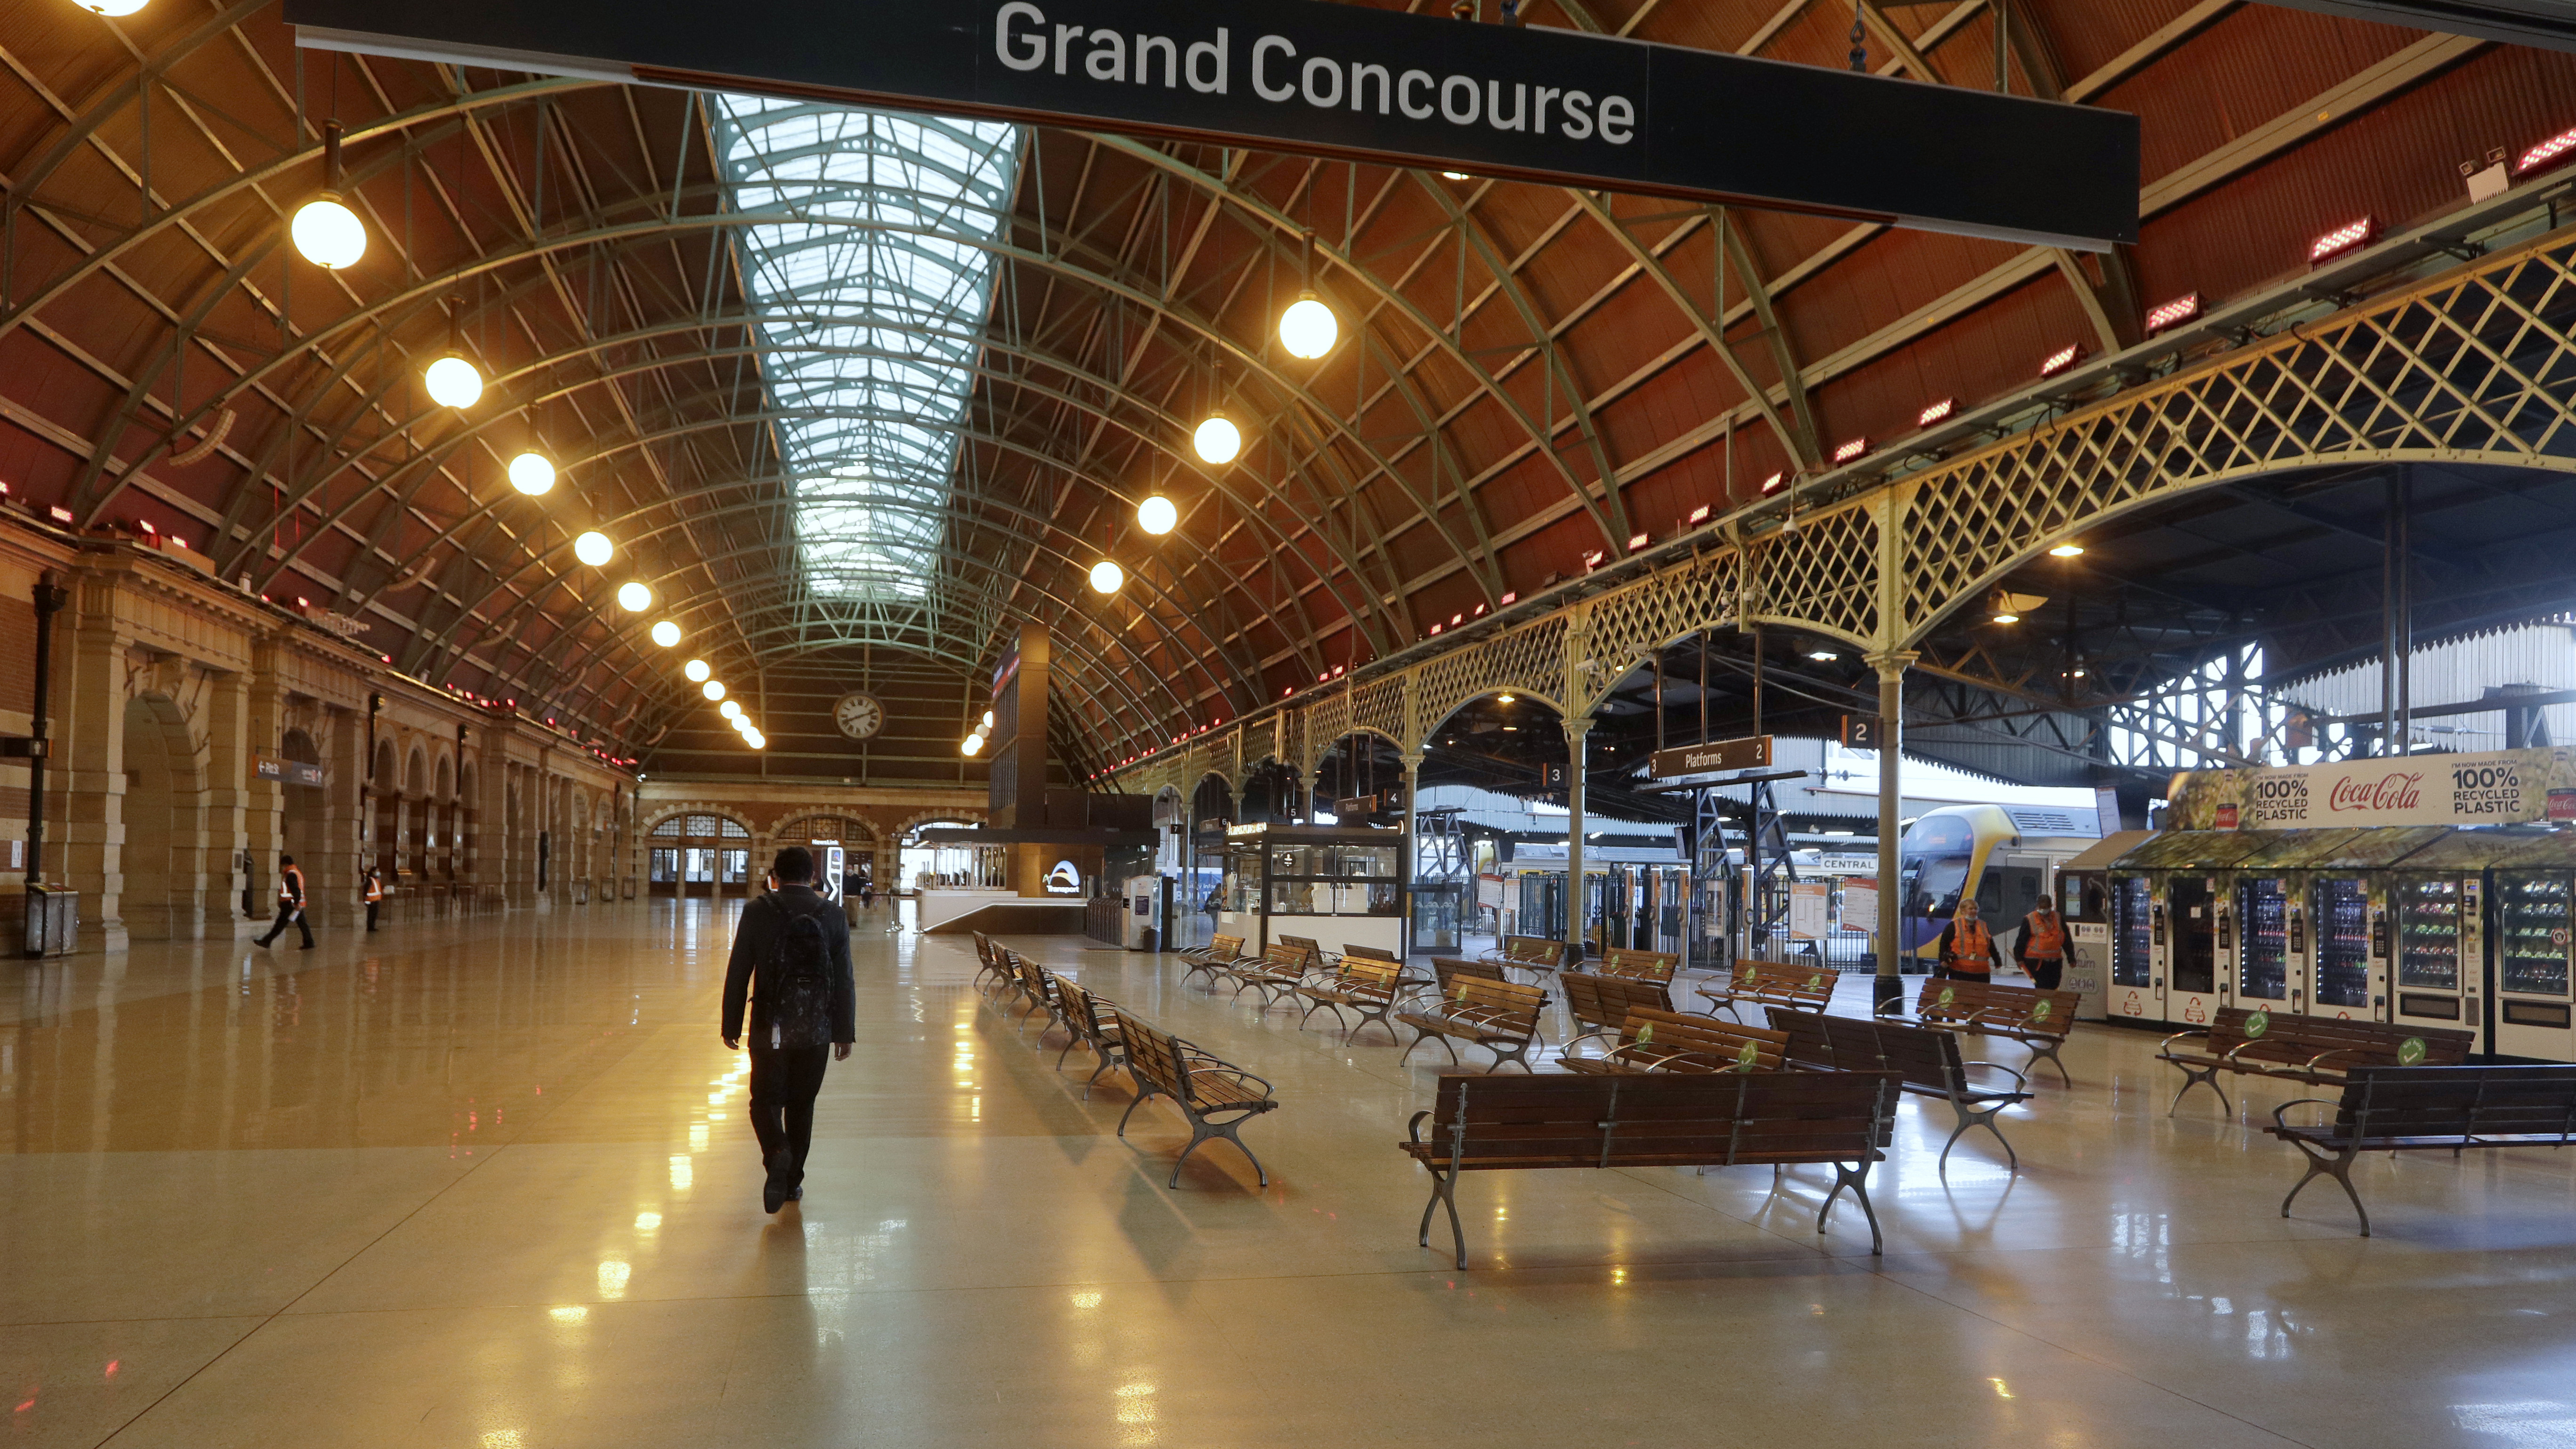 Central Station in Sydney, is near empty on Aug. 13, 2021 as greater Sydney continues a weeks-long COVID-19 lockdown.